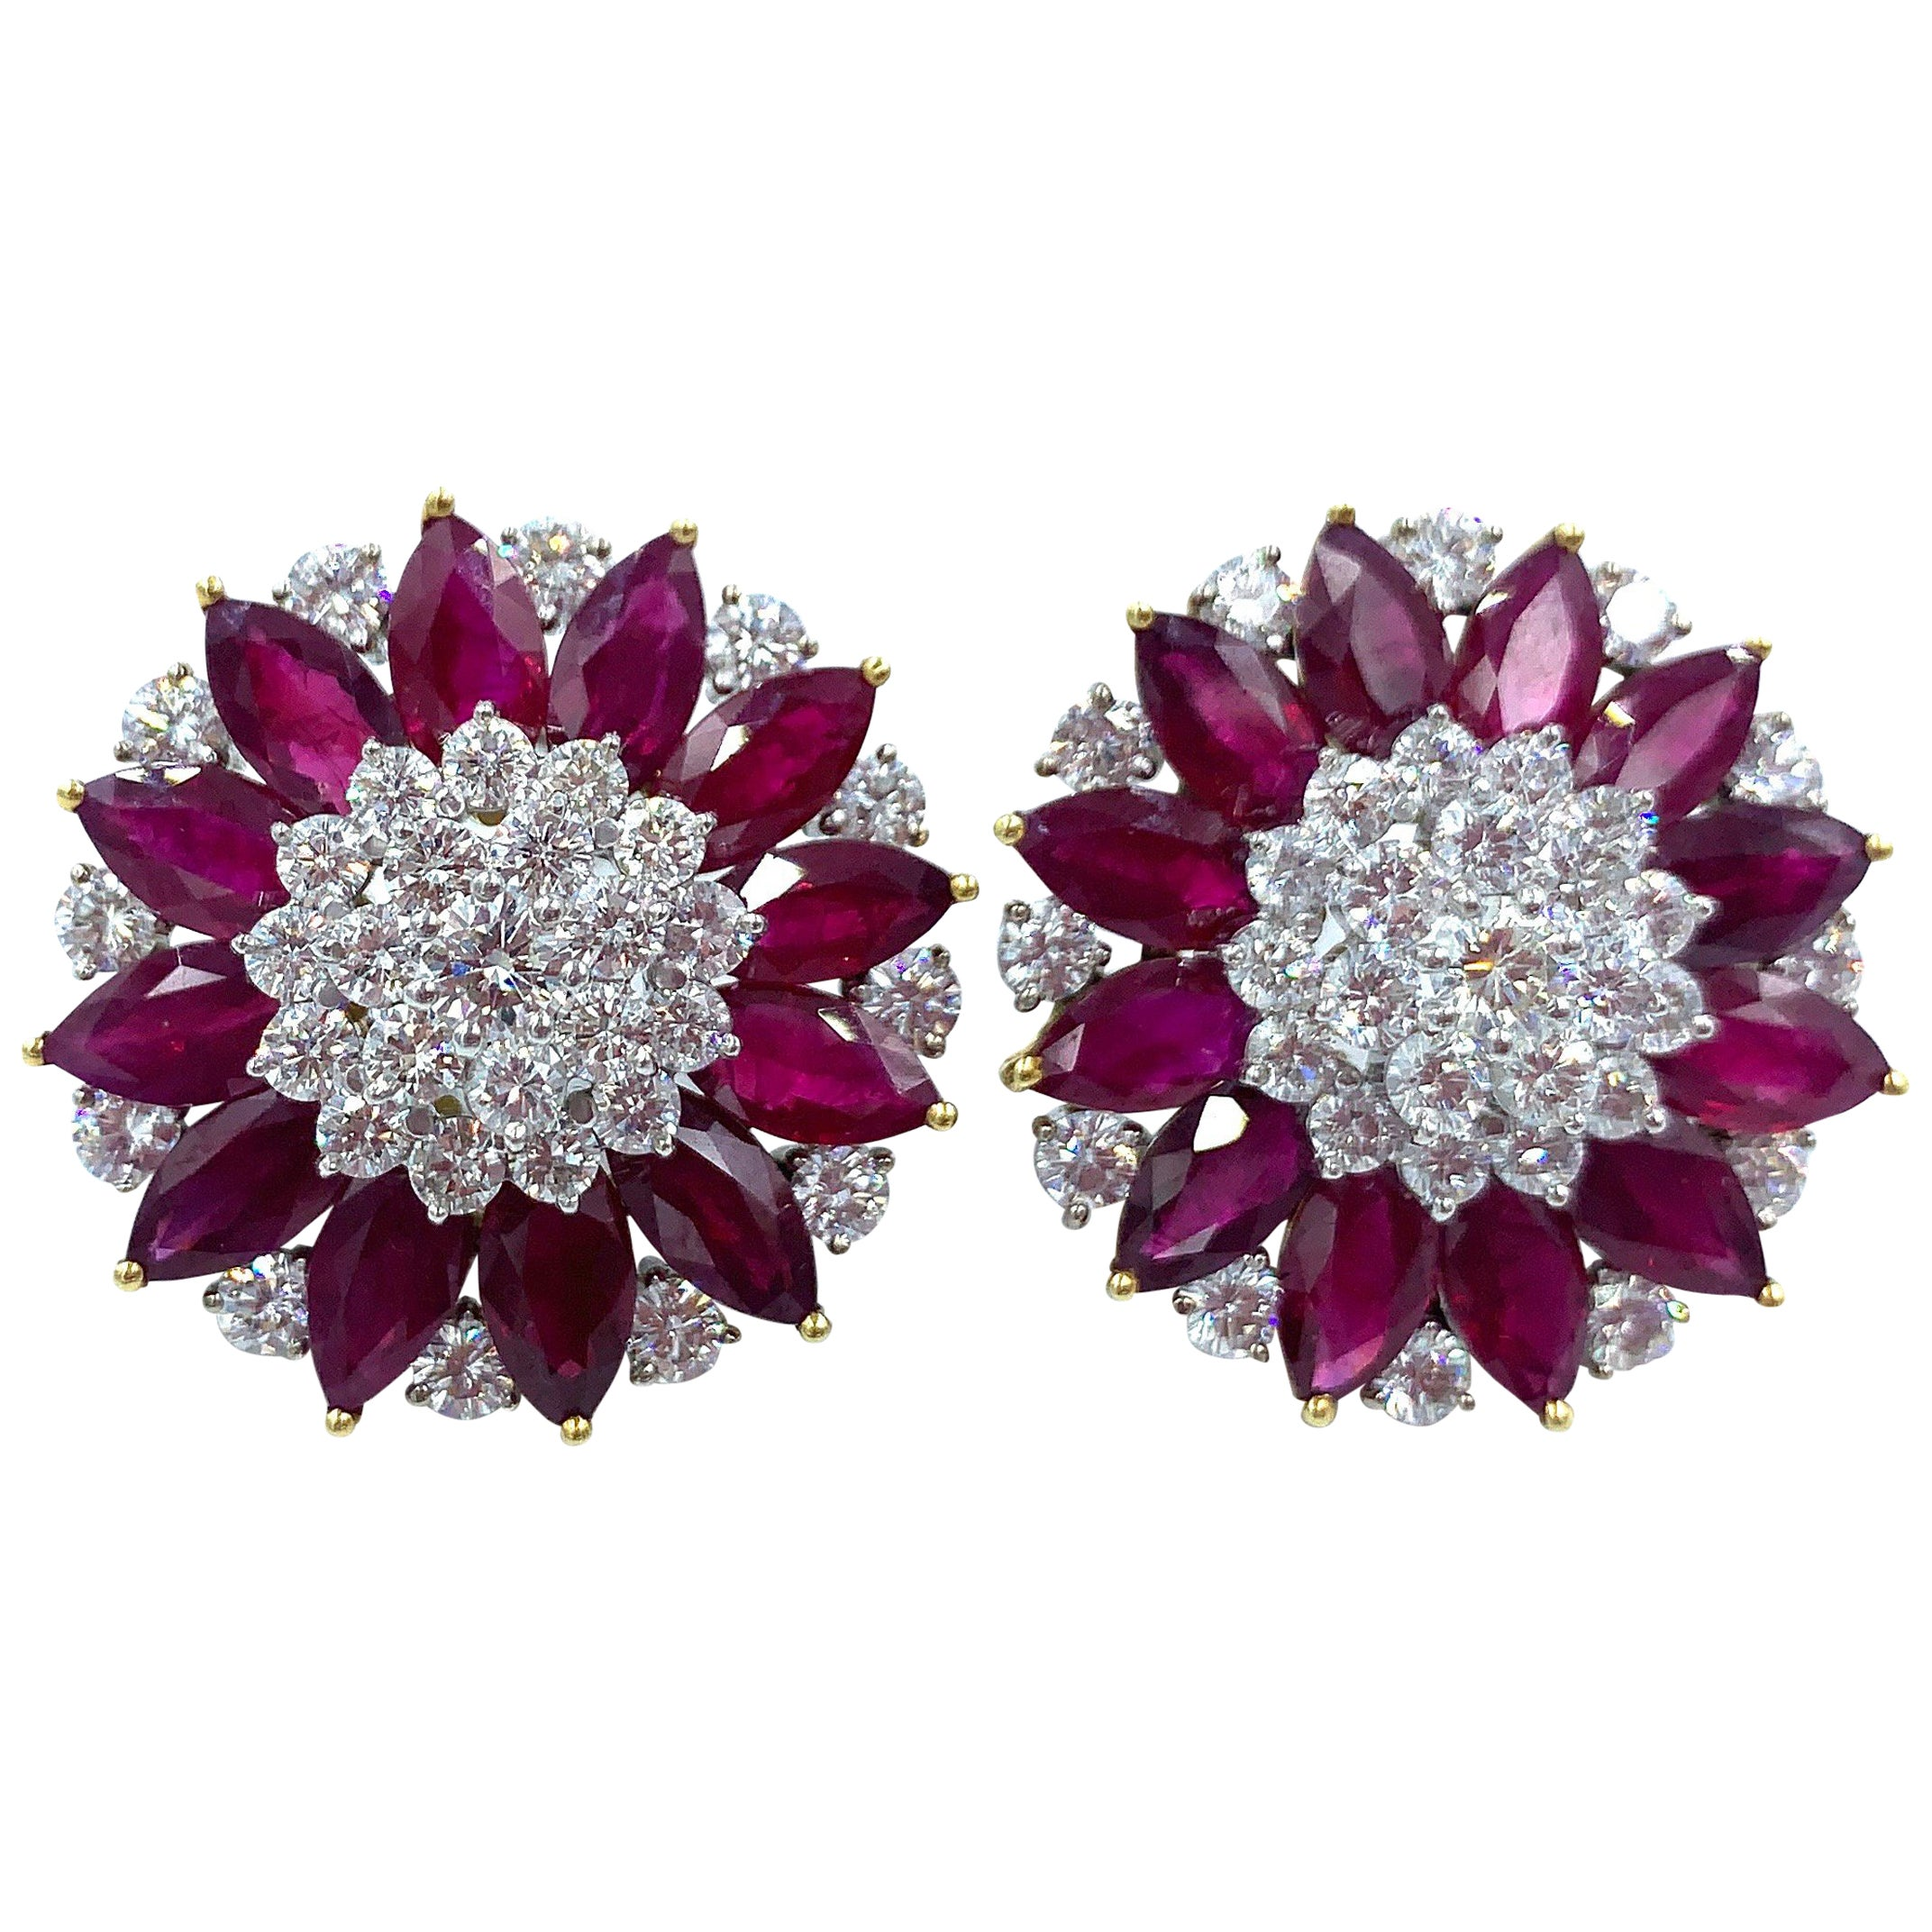 Diamond and Ruby Cluster Clip Earrings 18 Karat White and Yellow Gold